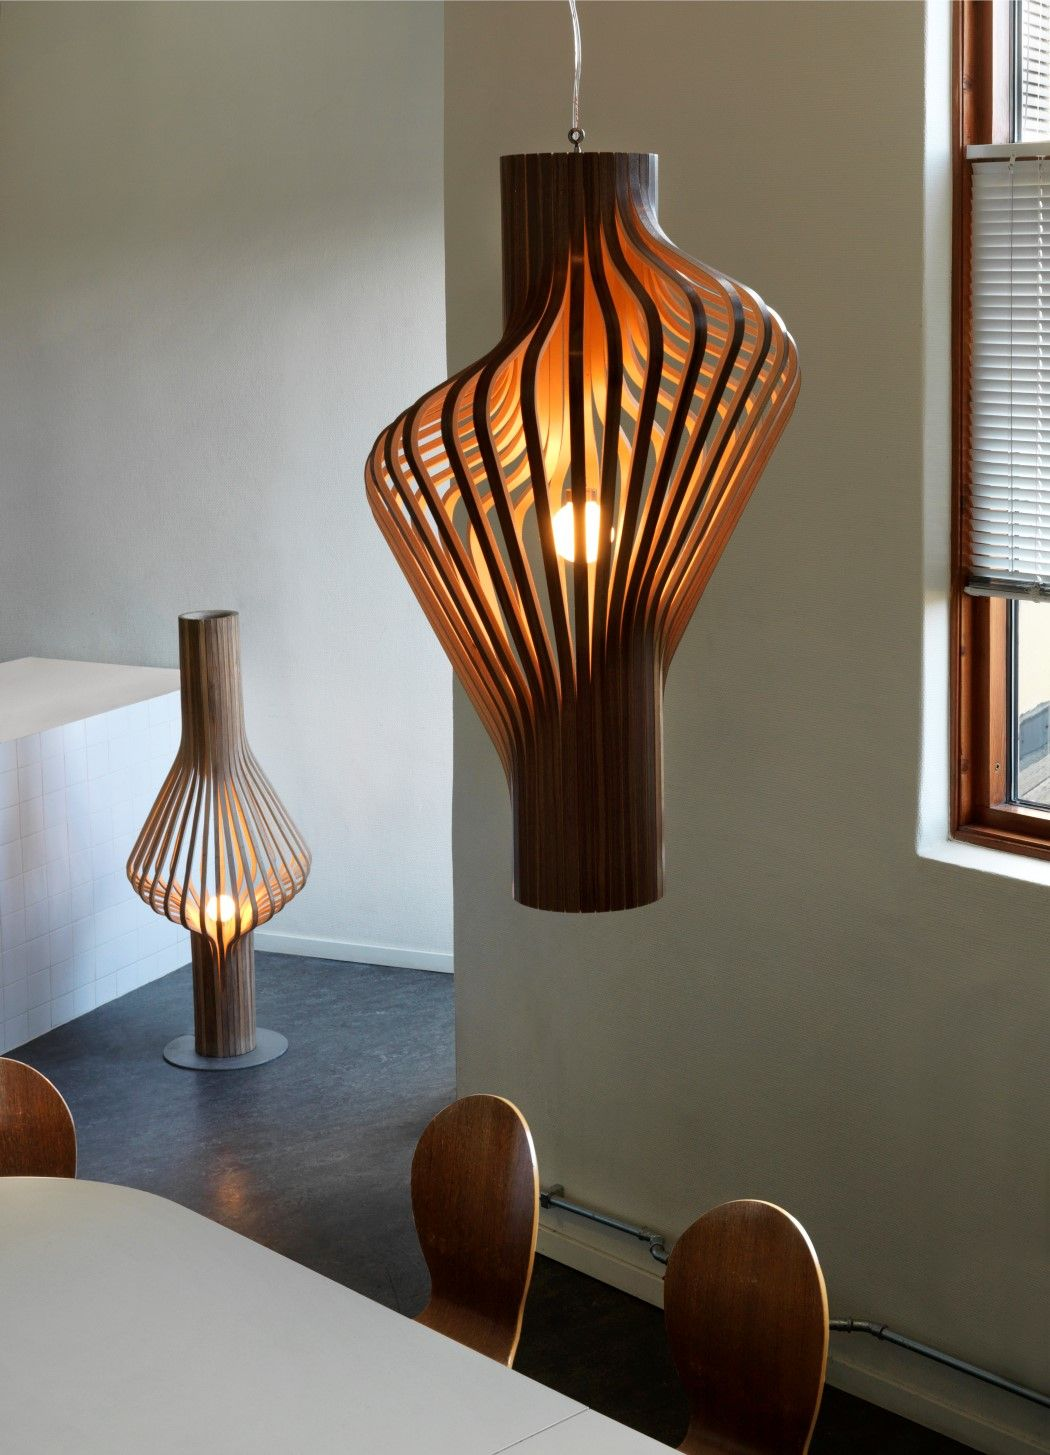 A Light That Steals The Show Yanko Design Modern Lamp Design Lamp Design Bamboo Lamp